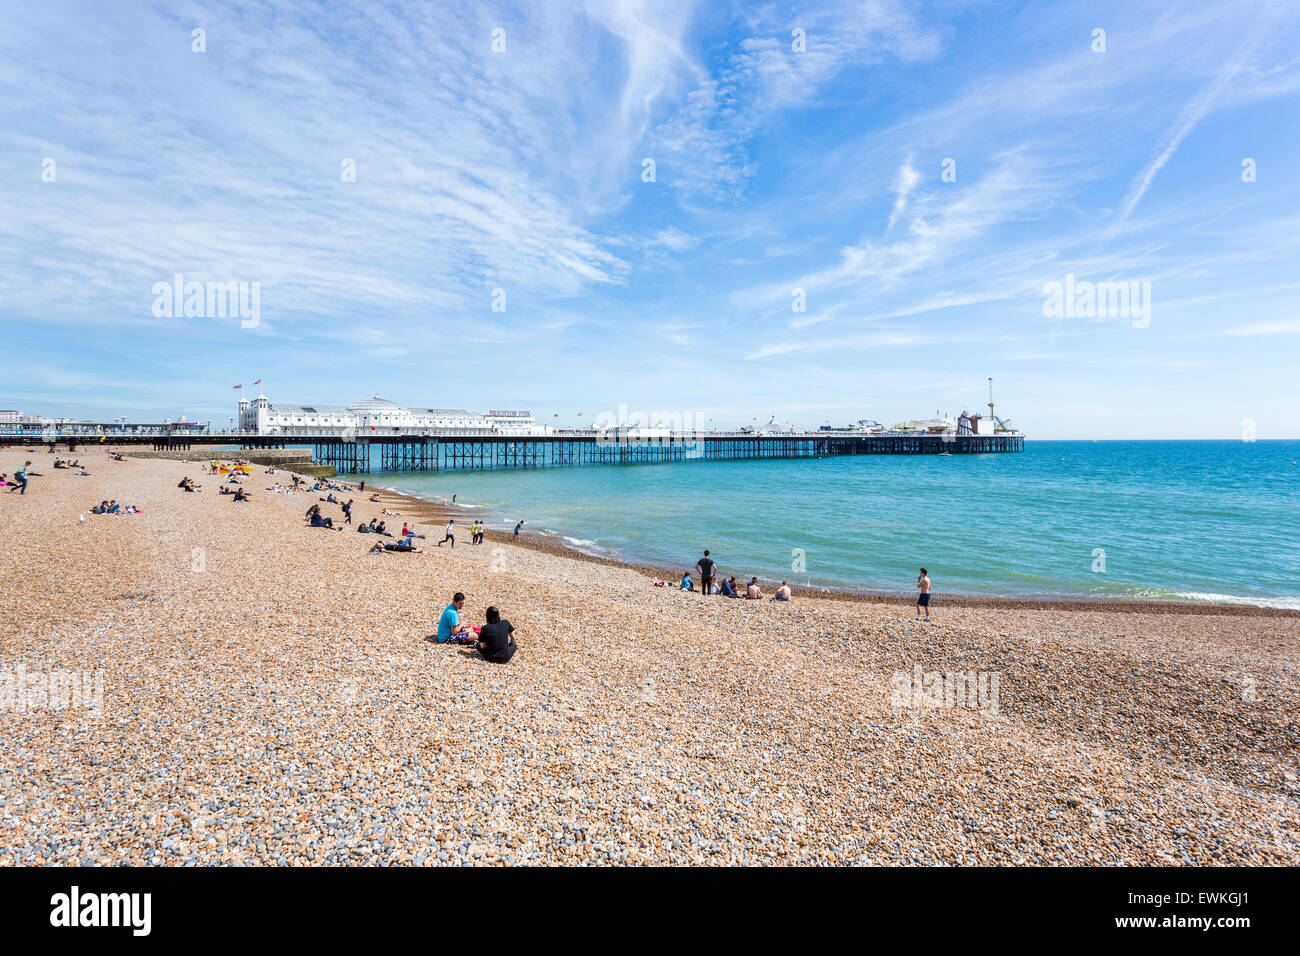 The shingle beach at Brighton, East Sussex, UK in summer and the Palace Pier (Brighton Pier) on a sunny day - Stock Image